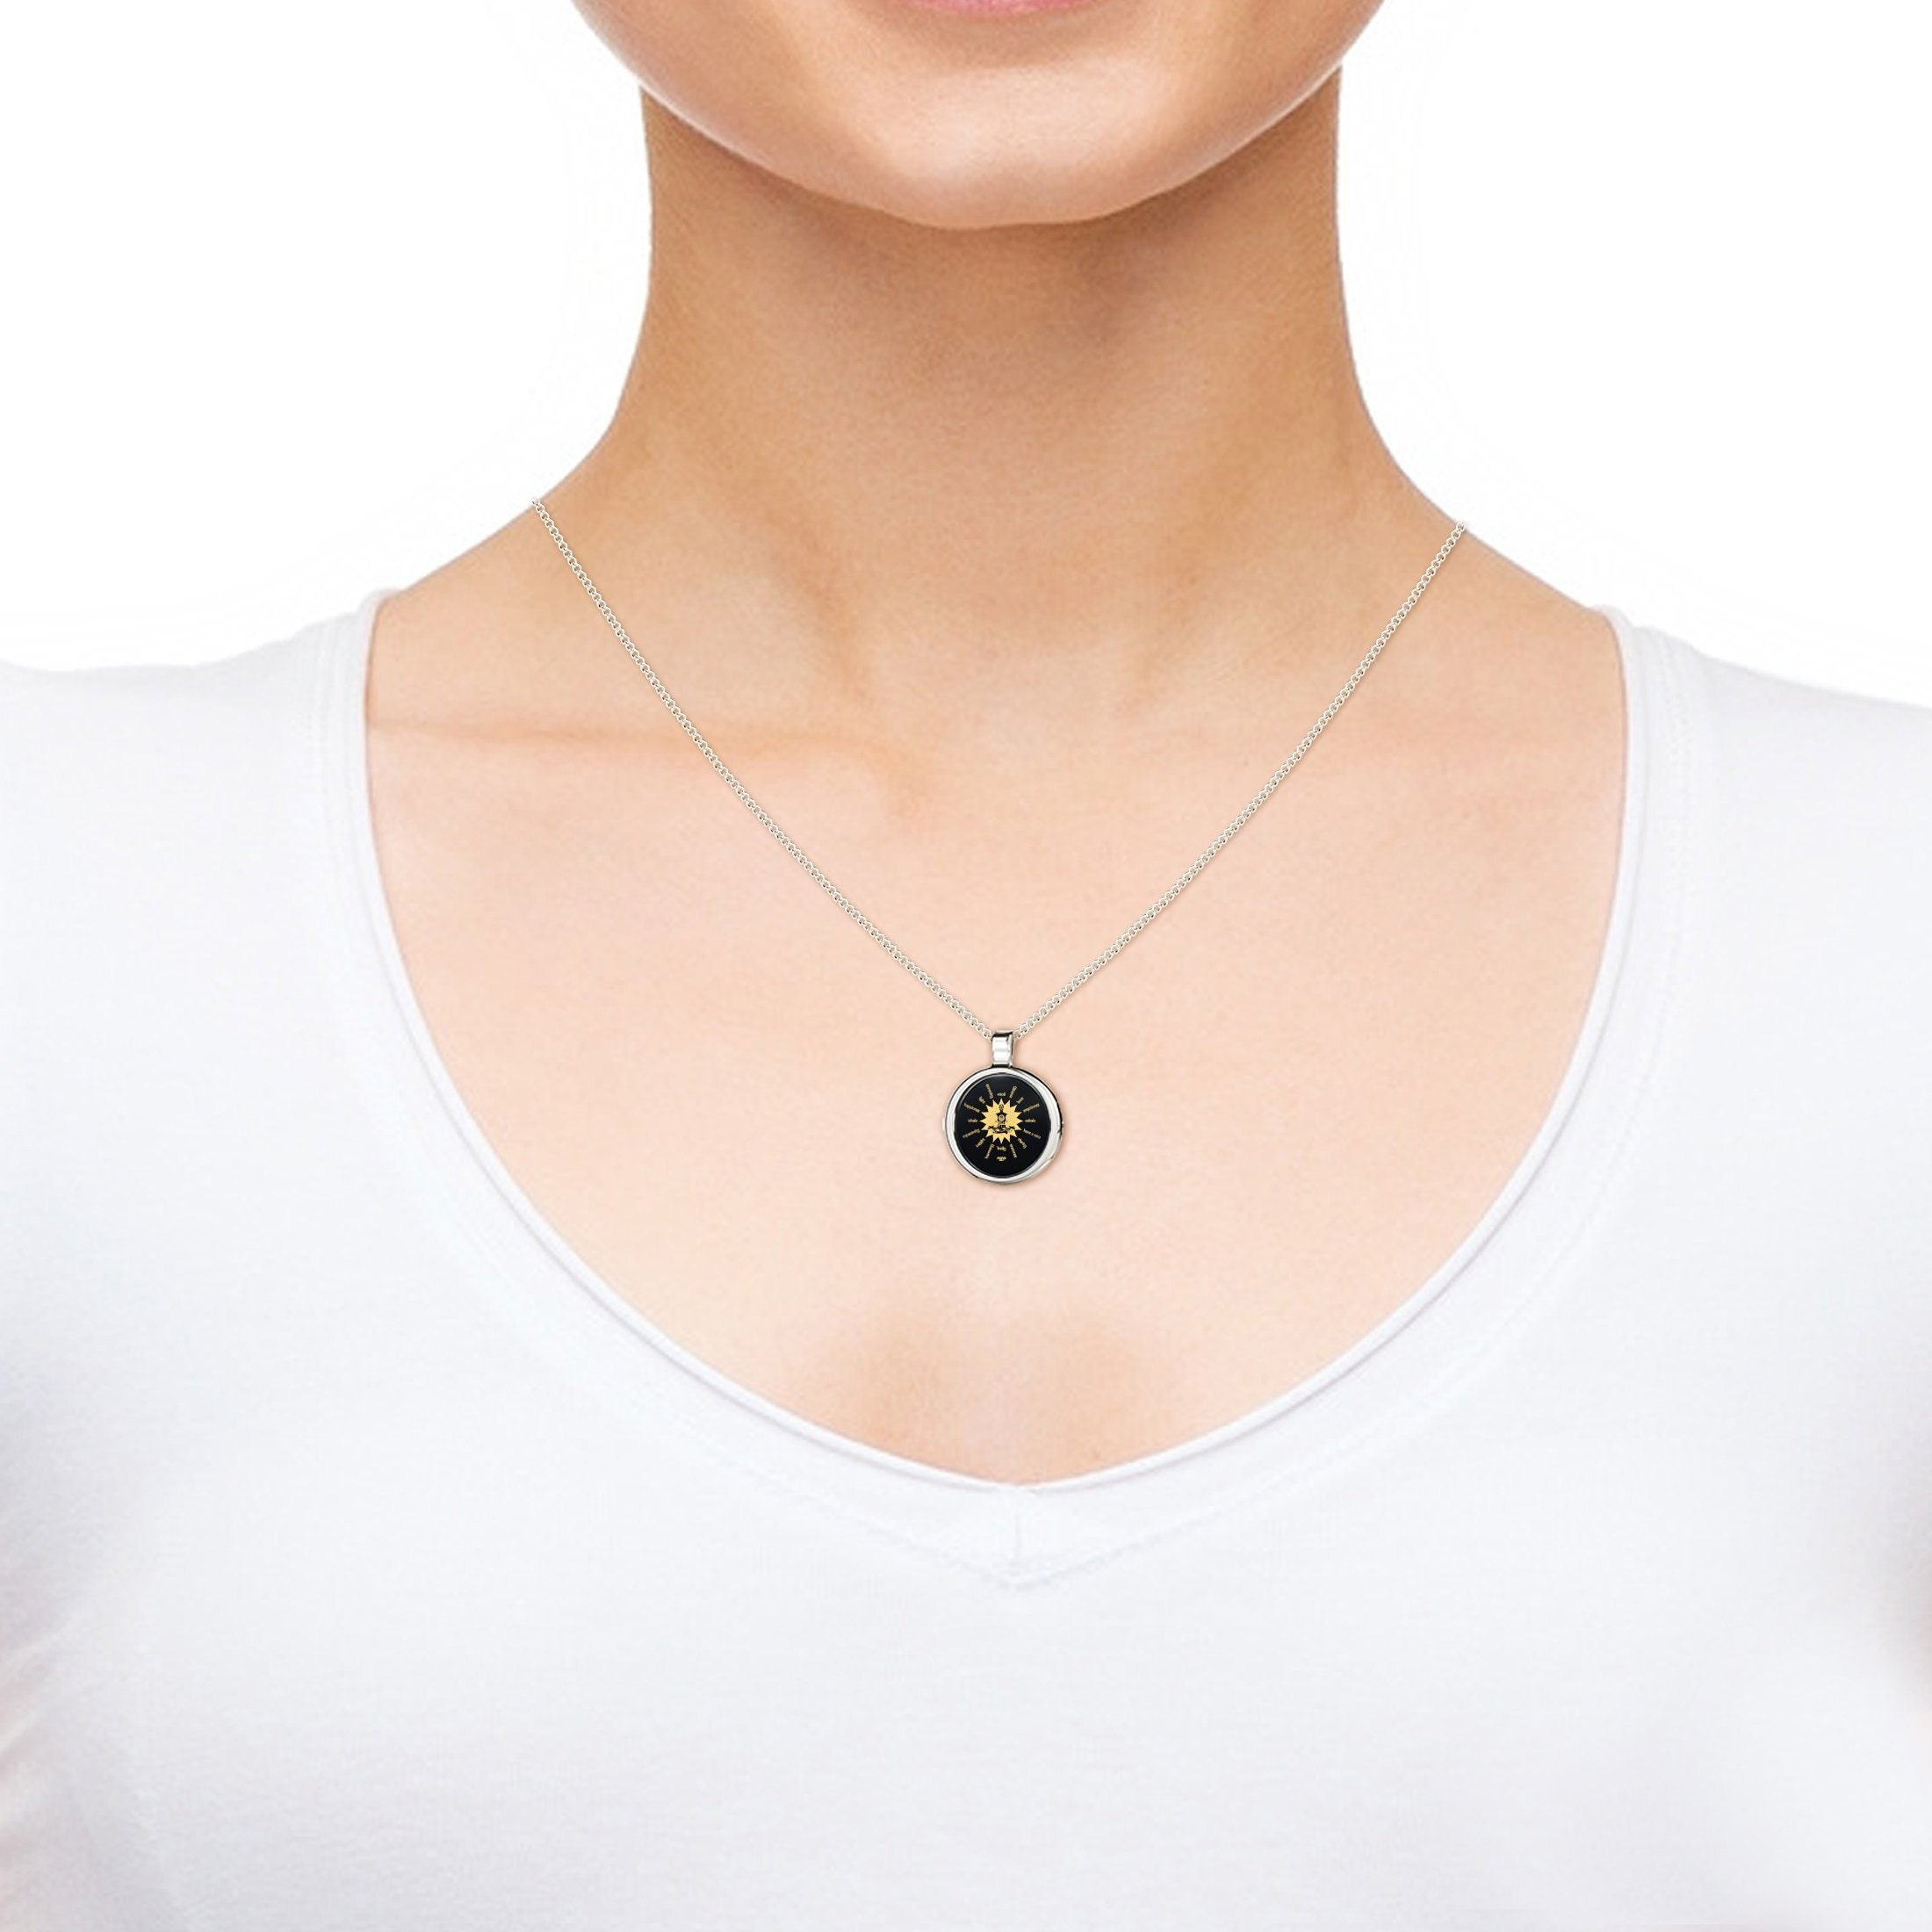 Meditation Gifts for Her, Nano Jewelry